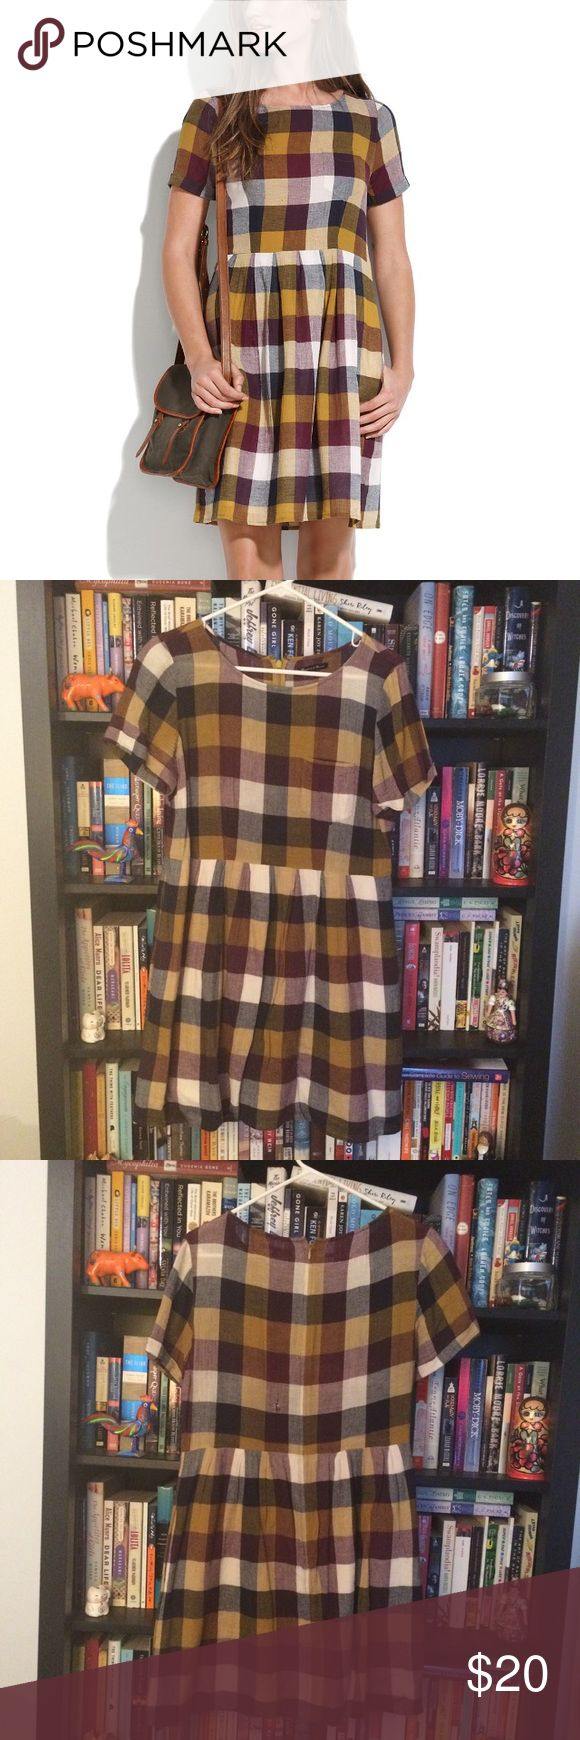 """Madewell Broadway & Broome Plaid Dress (US 10) This gauzy purple and mustard checked dress was a go-to for me for years, but sadly now it's just taking up space. It's well worn with a small tear in the back (pictured), but I know some smart styling could breathe new life into this well-loved piece. It was originally called the """"Plaid Songbird Dress."""" Madewell Dresses Mini"""